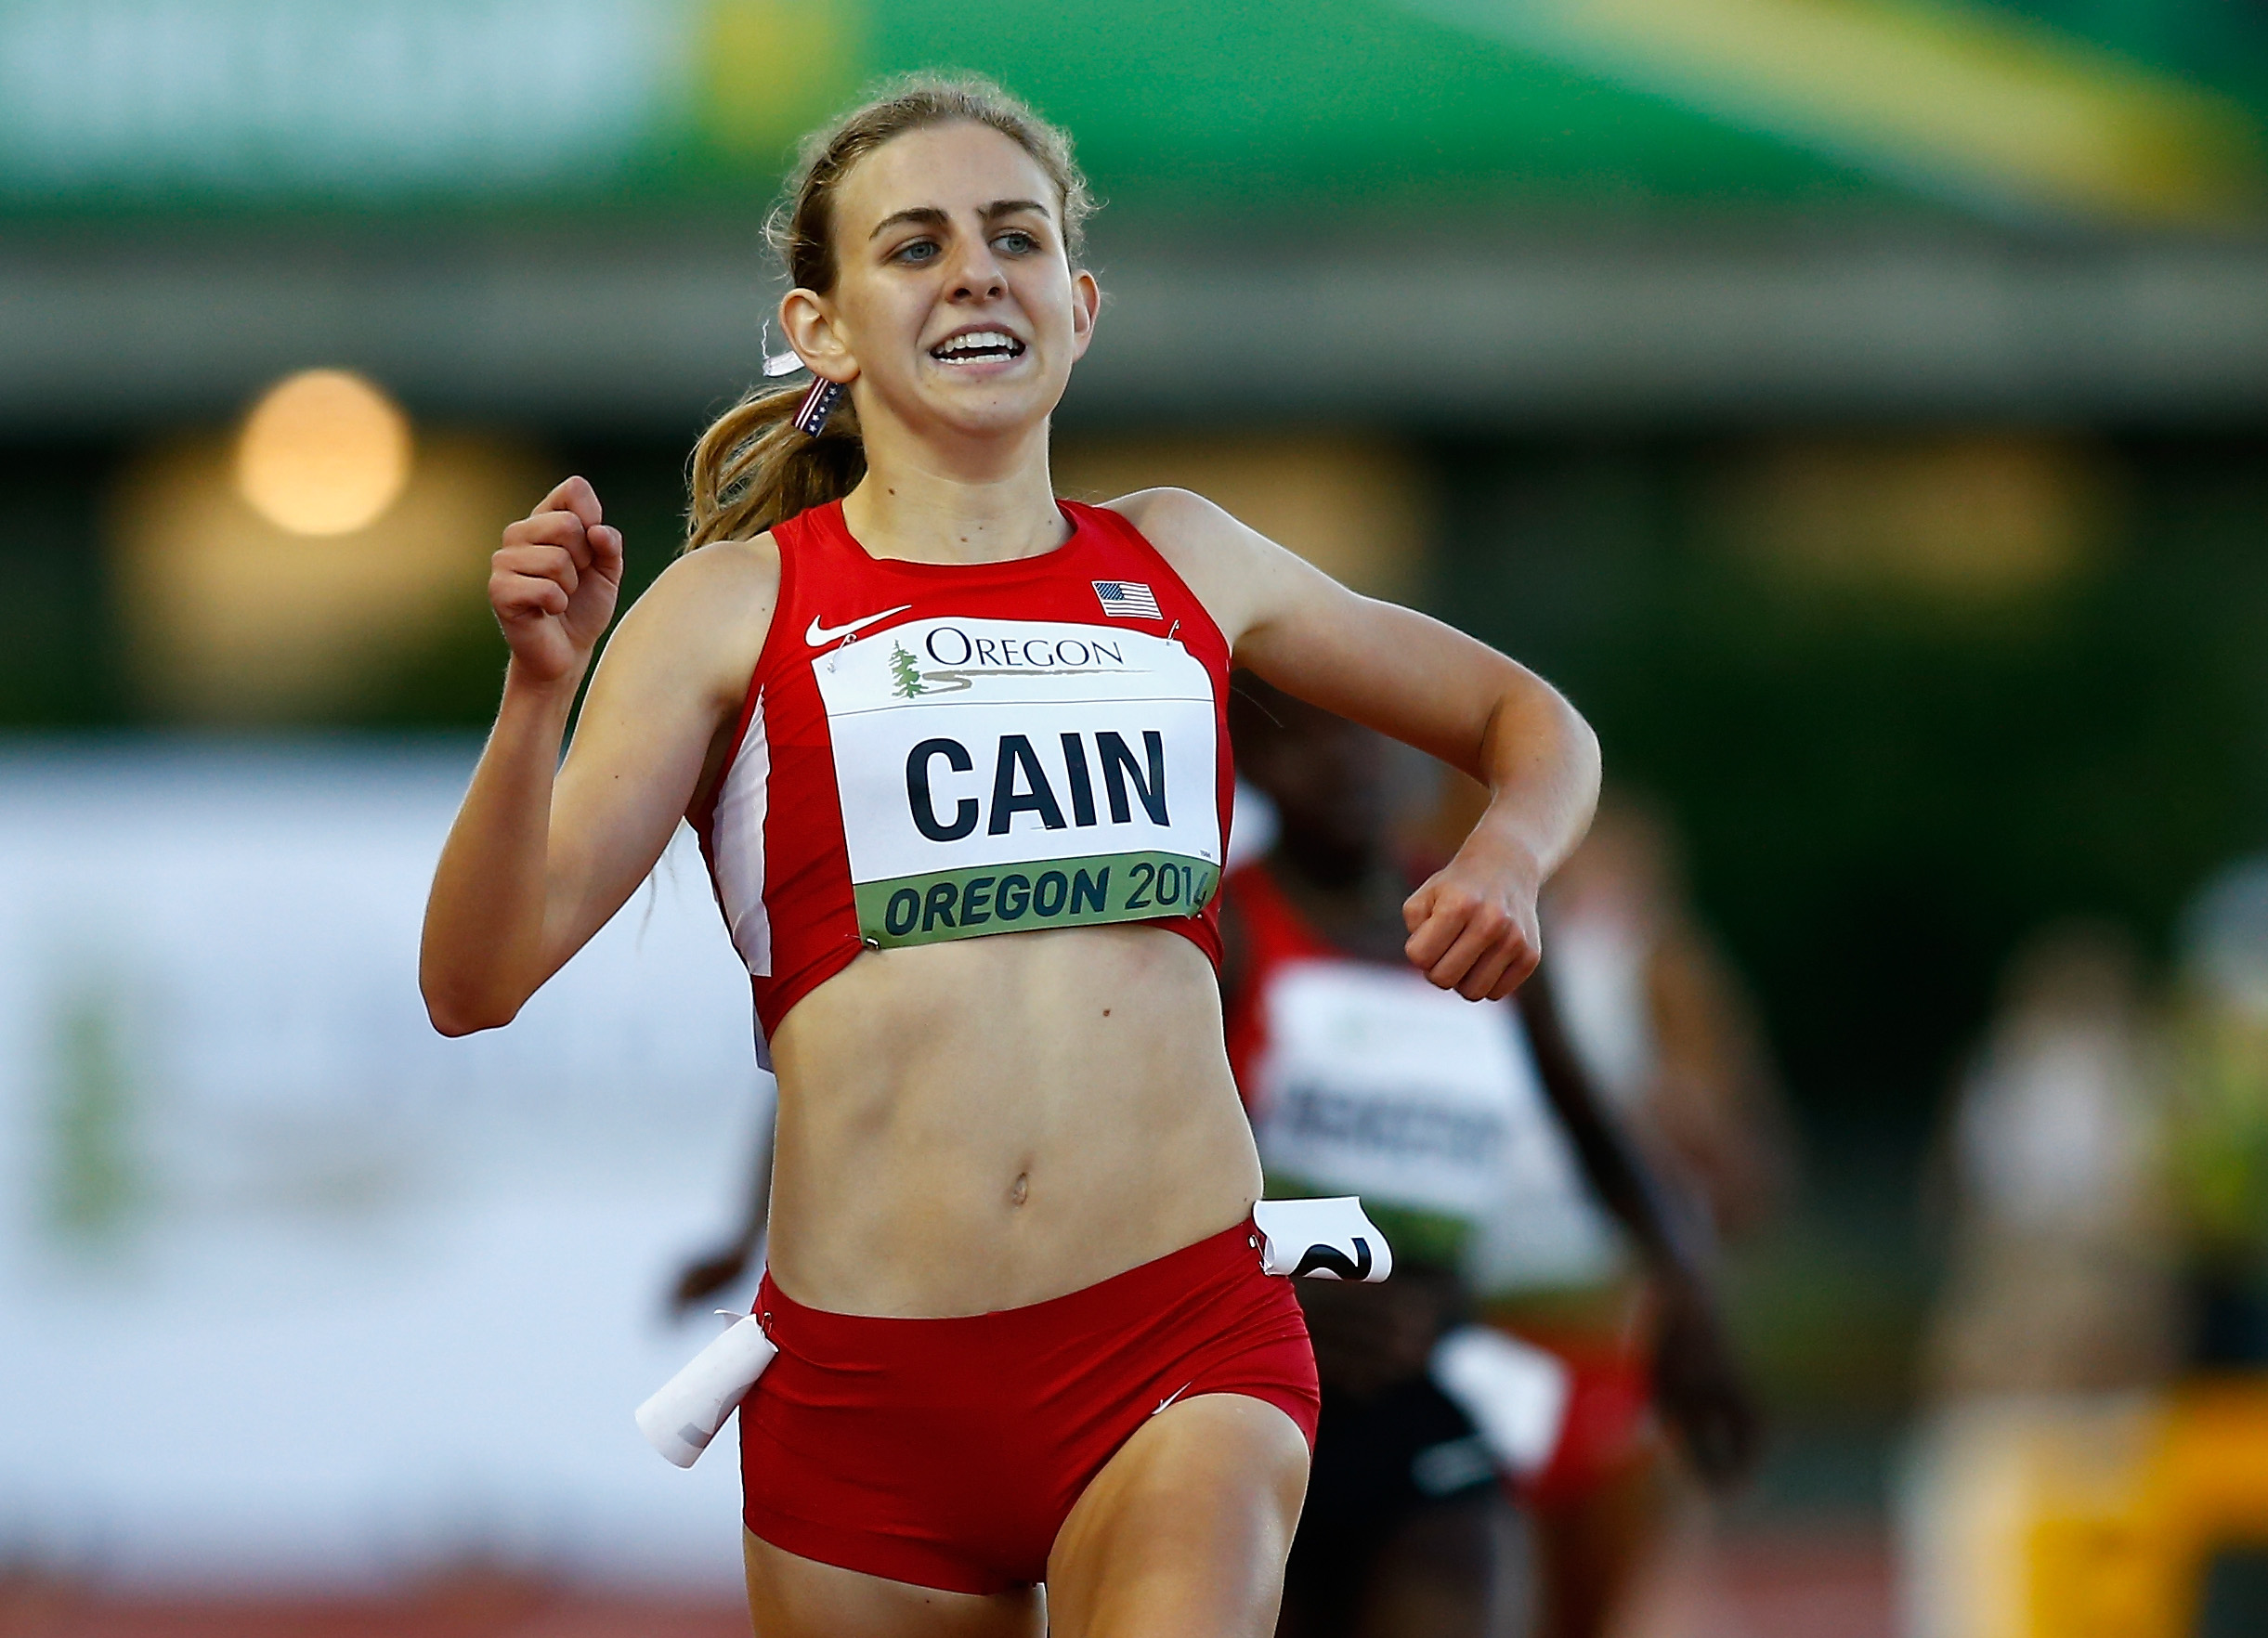 USA Rising Star Mary Cain is coming to Cork « Cork City ...